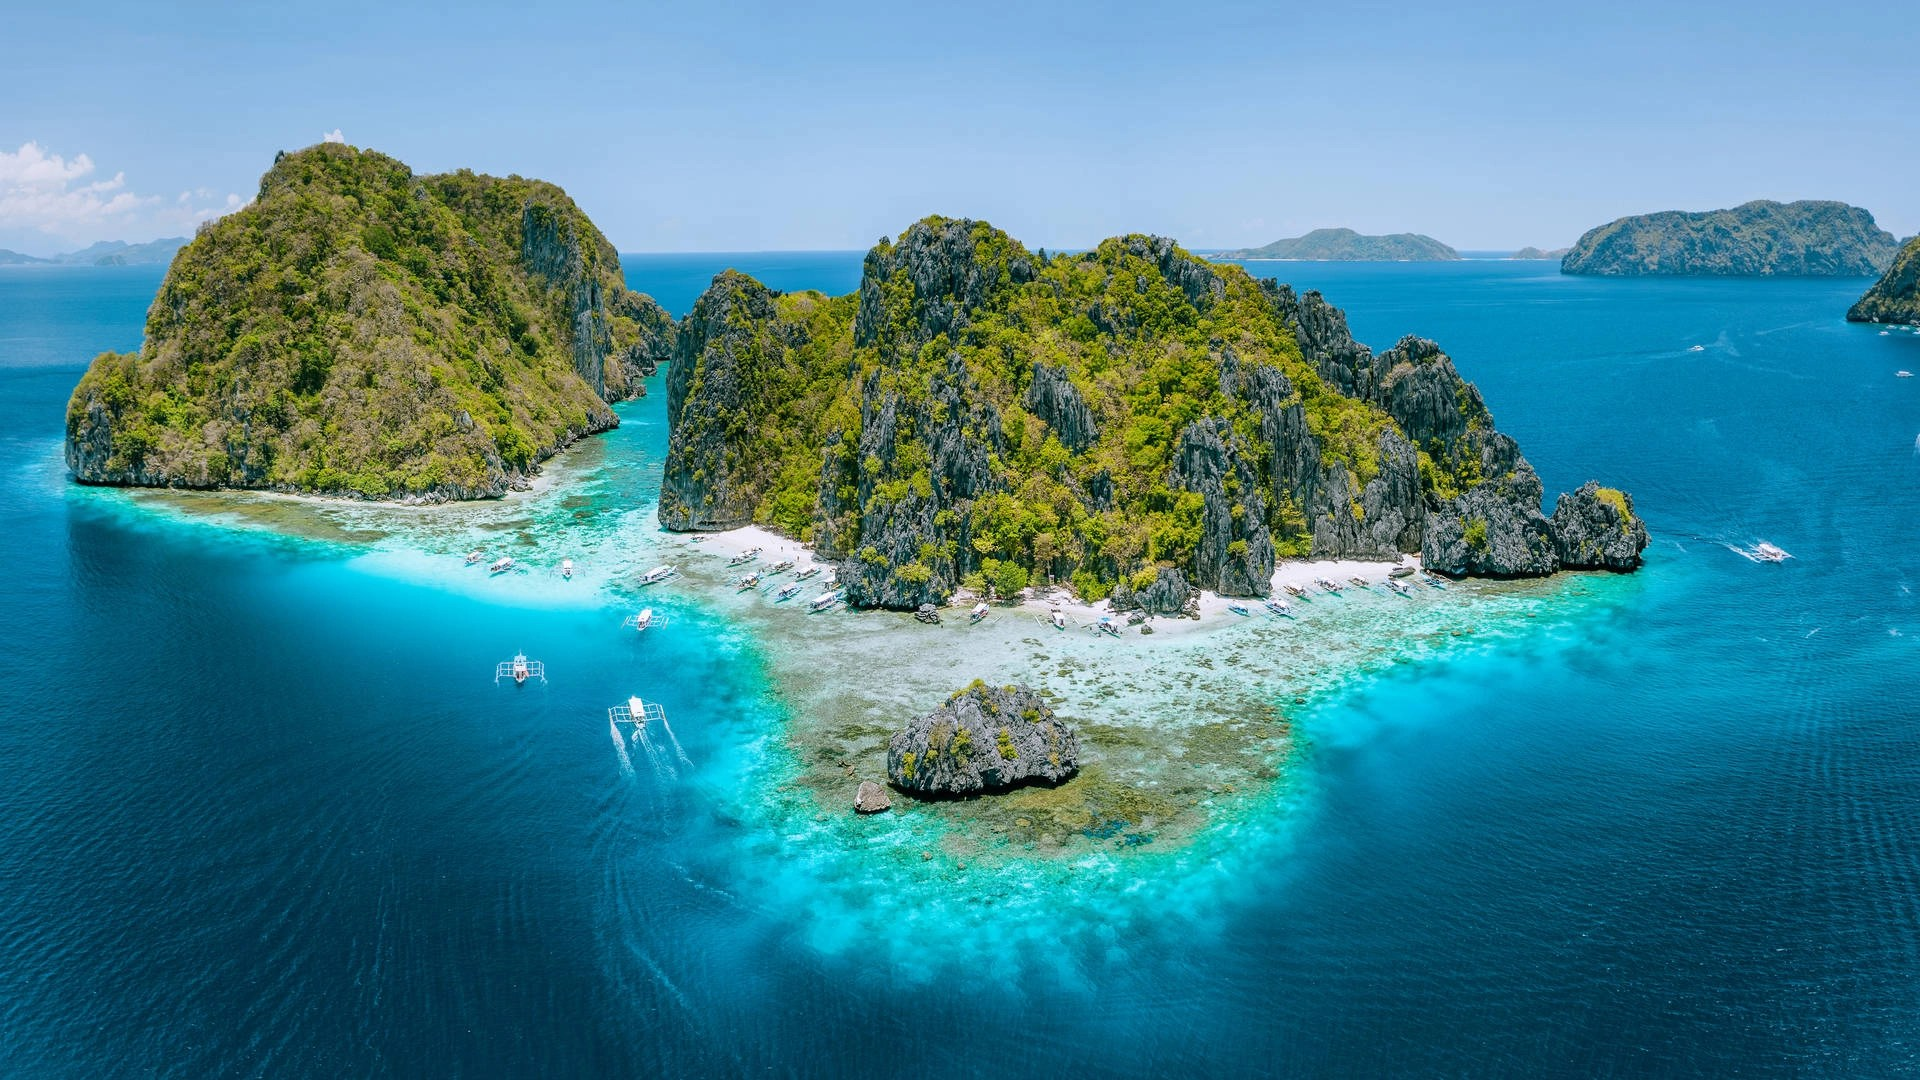 The journey from Coron to El Nido: A traveler review